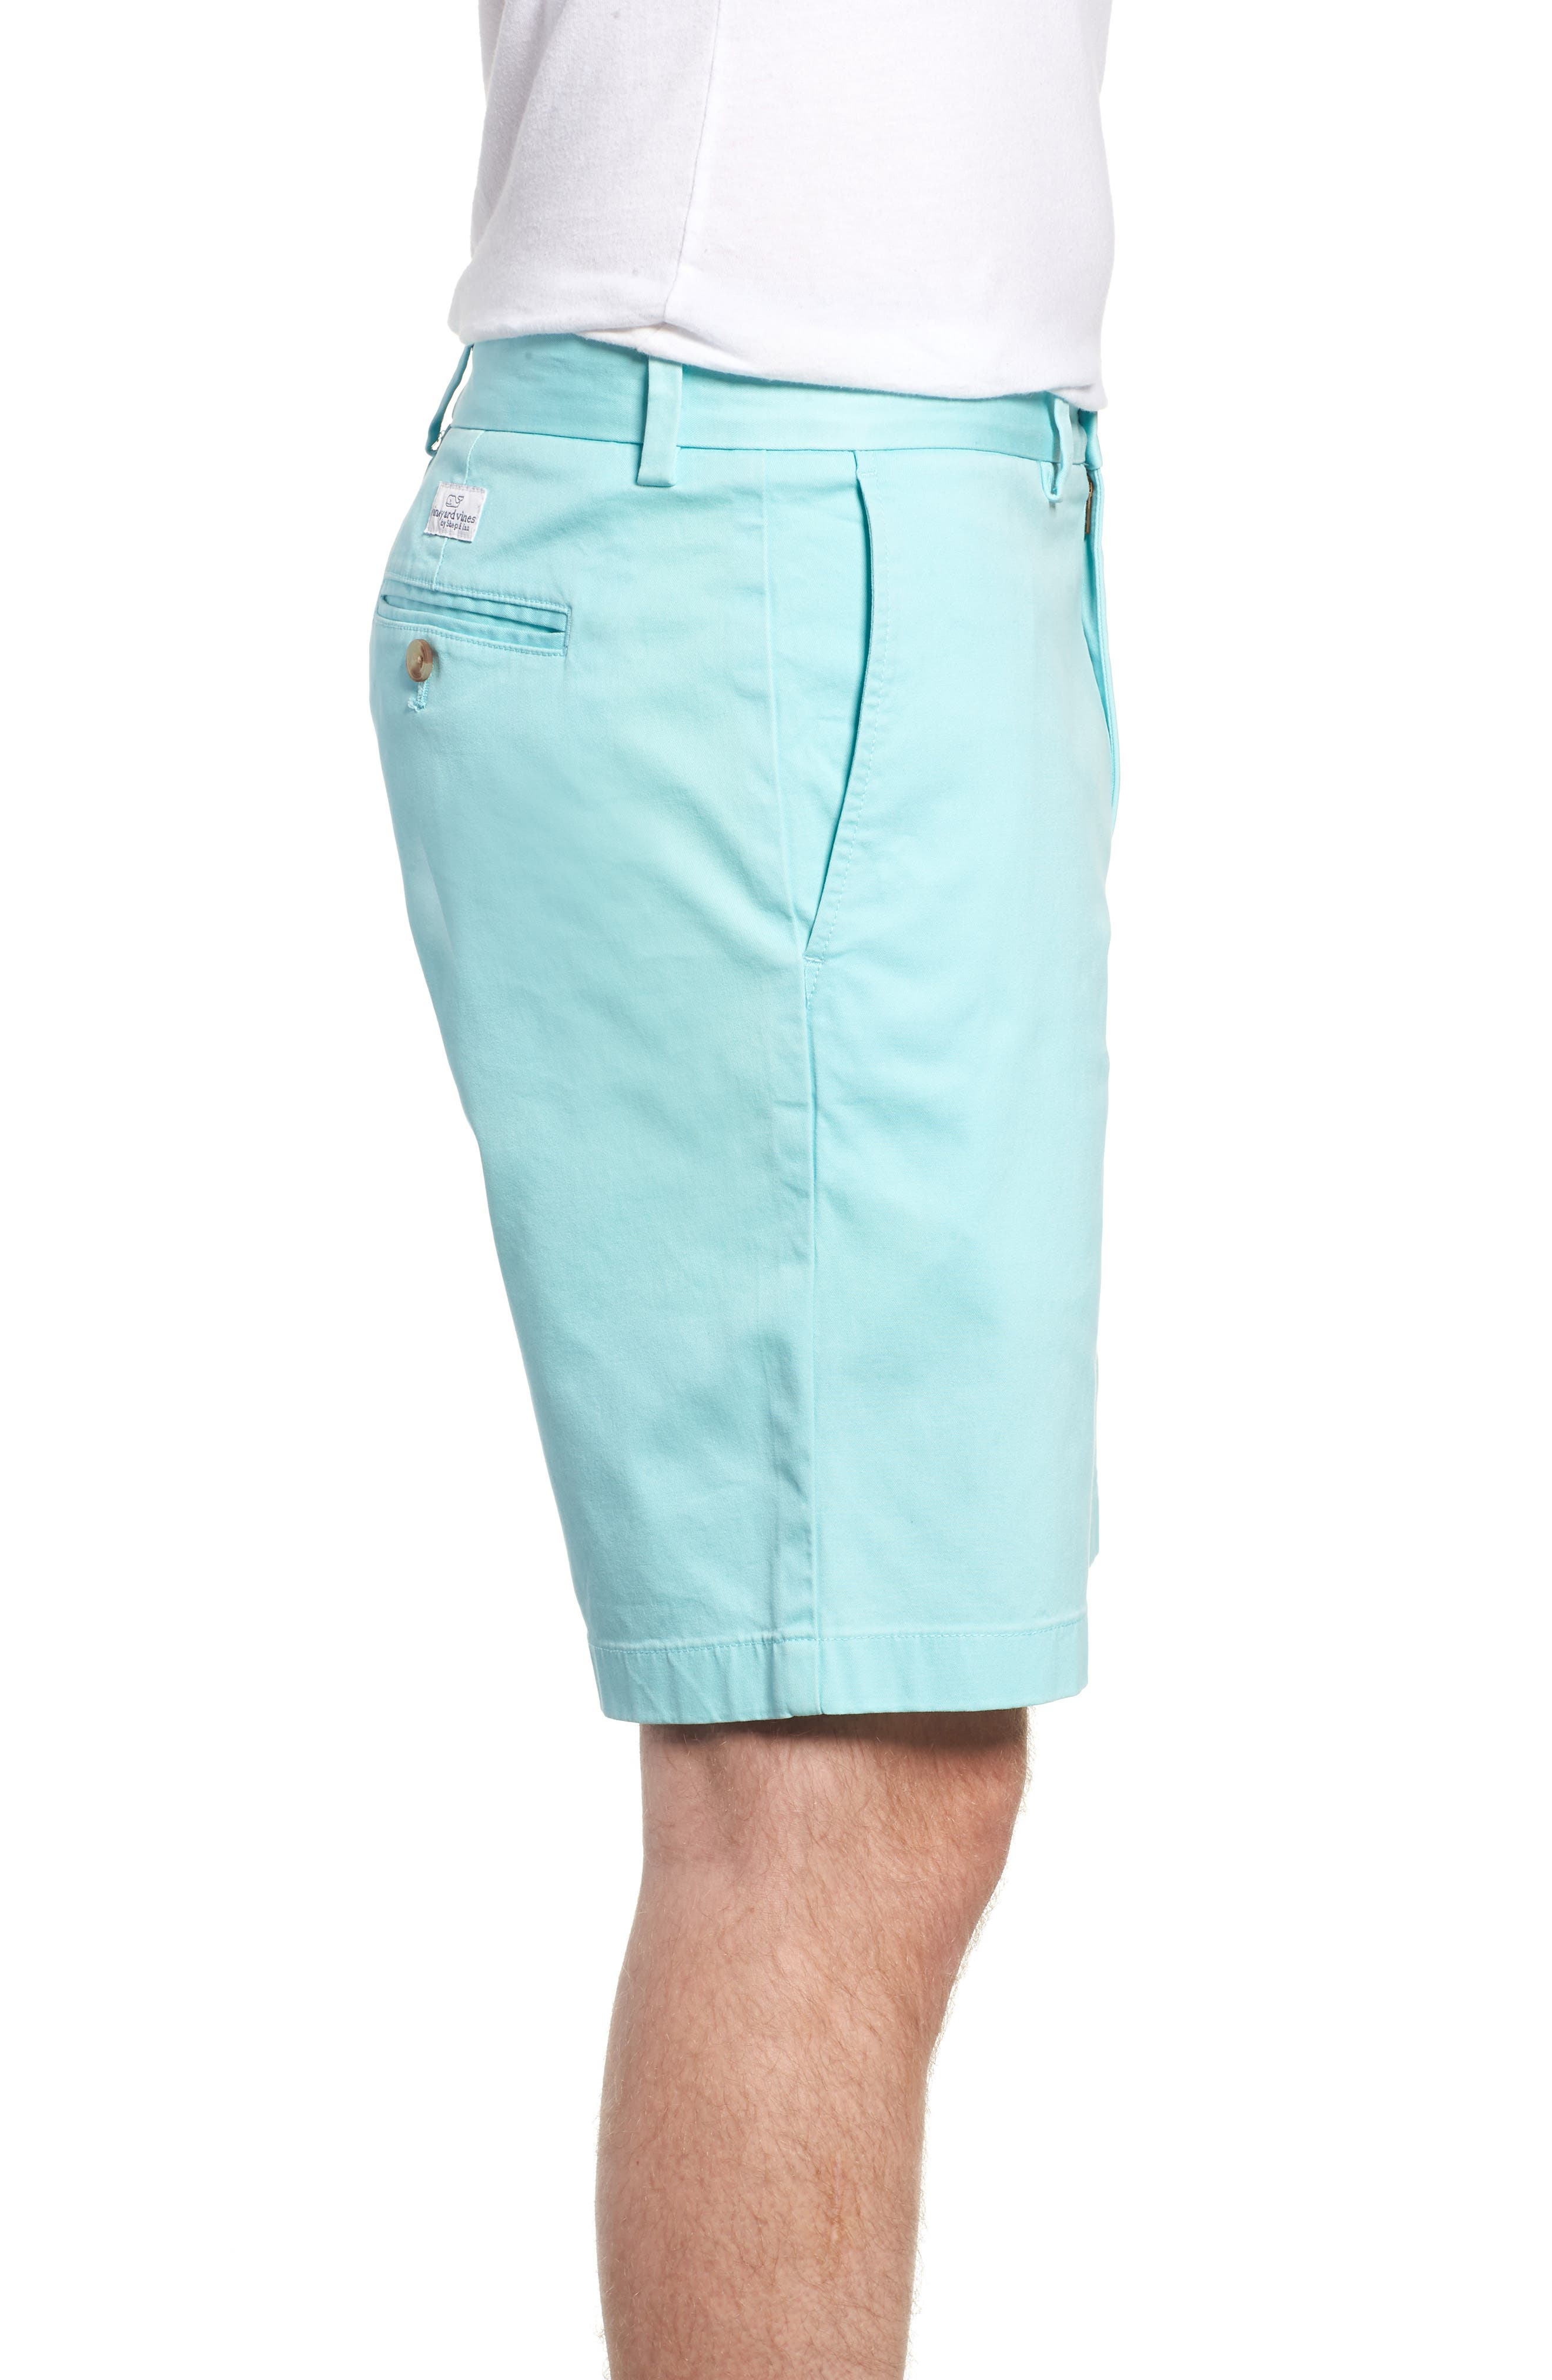 9 Inch Stretch Breaker Shorts,                             Alternate thumbnail 3, color,                             437